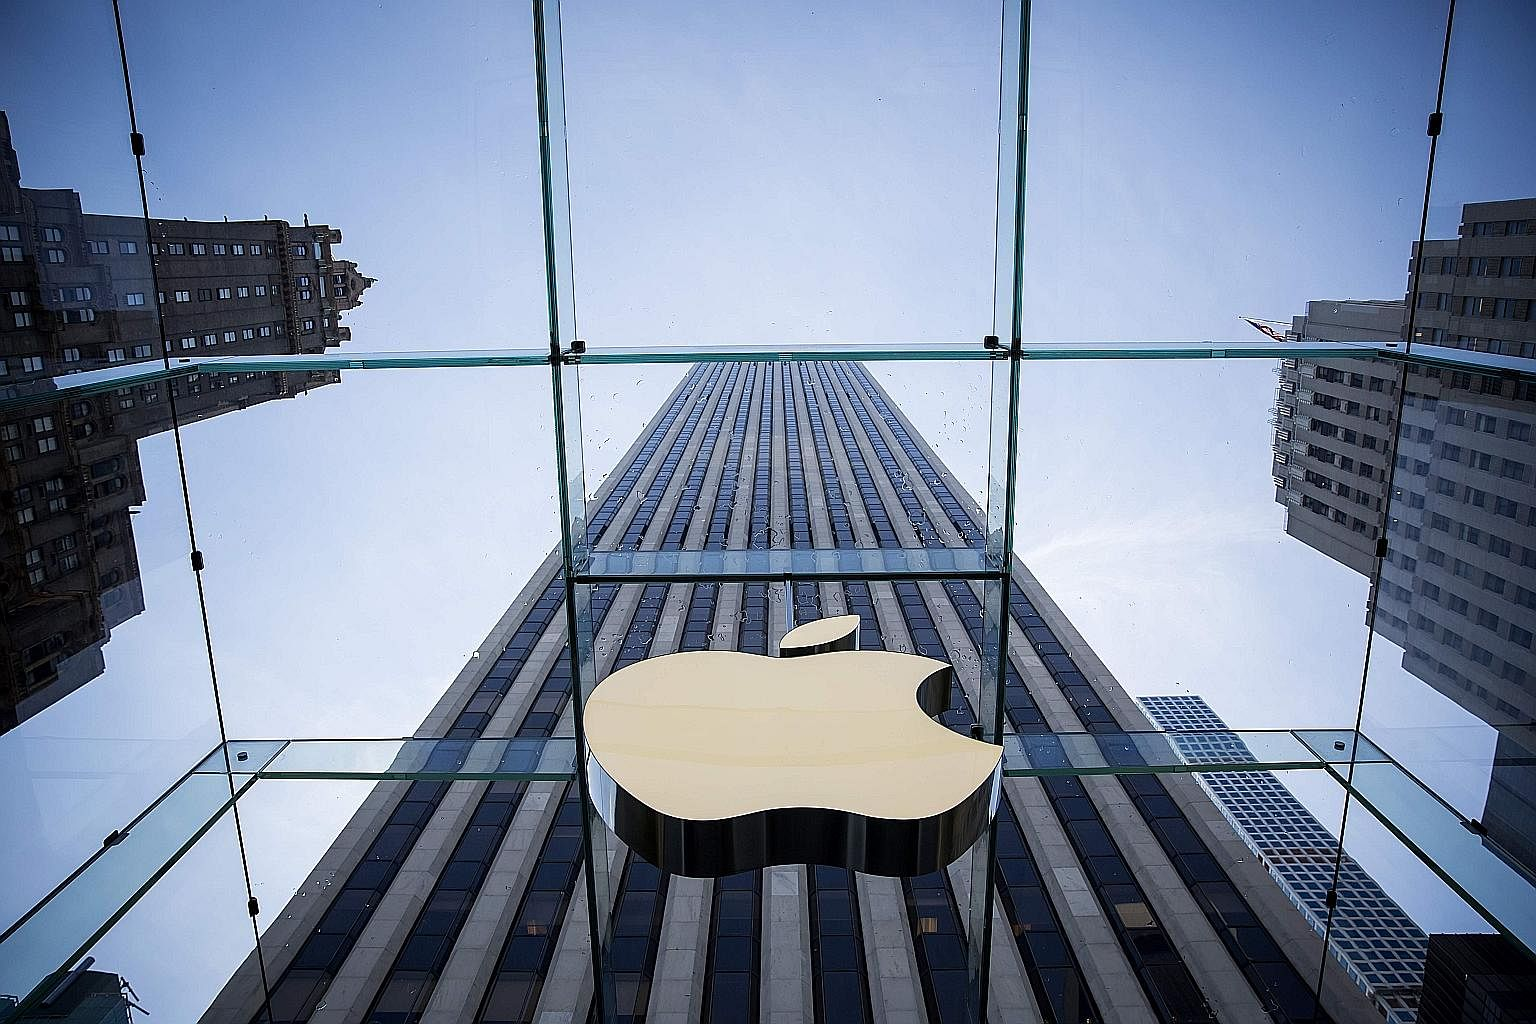 According to the Financial Times, Apple and Facebook together account for more than 20 per cent of the S&P 500's rise this year. A further 10 stocks - including e-commerce giant Amazon, Google owner Alphabet and more defensive plays such as the cigar